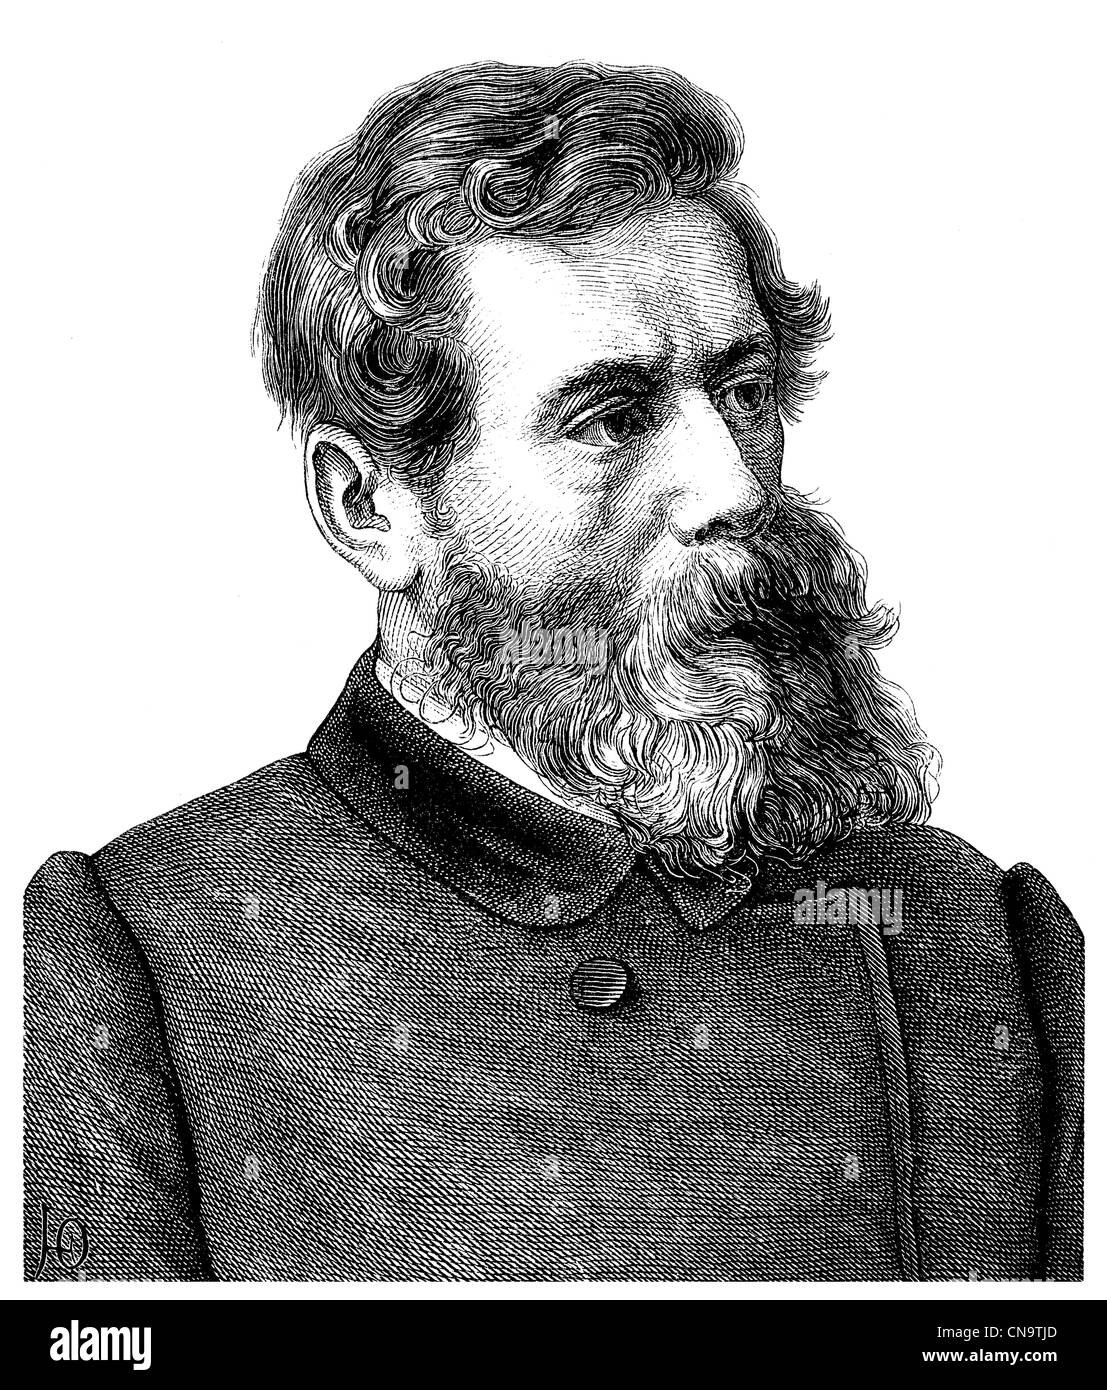 Historical drawing, 19th century, Ludwig Andreas Feuerbach, 1804 - 1872, a German philosopher and anthropologist - Stock Image